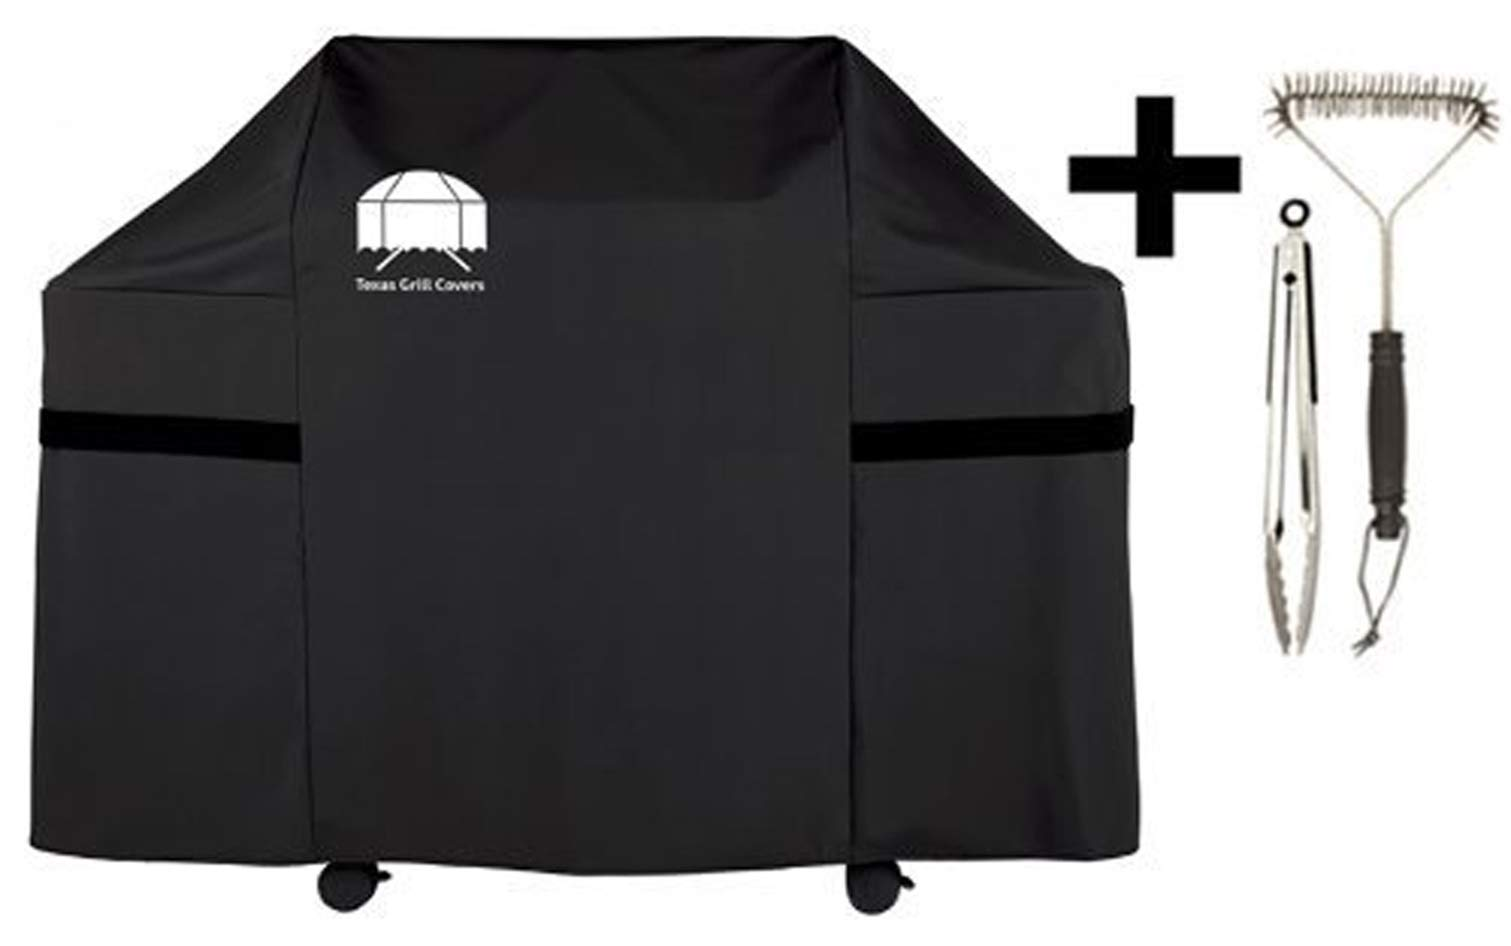 Texas Gas Grill Cover for Weber Genesis E and S Series Gas Grill 7553 | 7107 Premium Including Grill Brush and BBQ Tongs | Heavy Duty Waterproof Grill Cover for Outdoor Barbecue Gas Grill by Texas Grill Covers